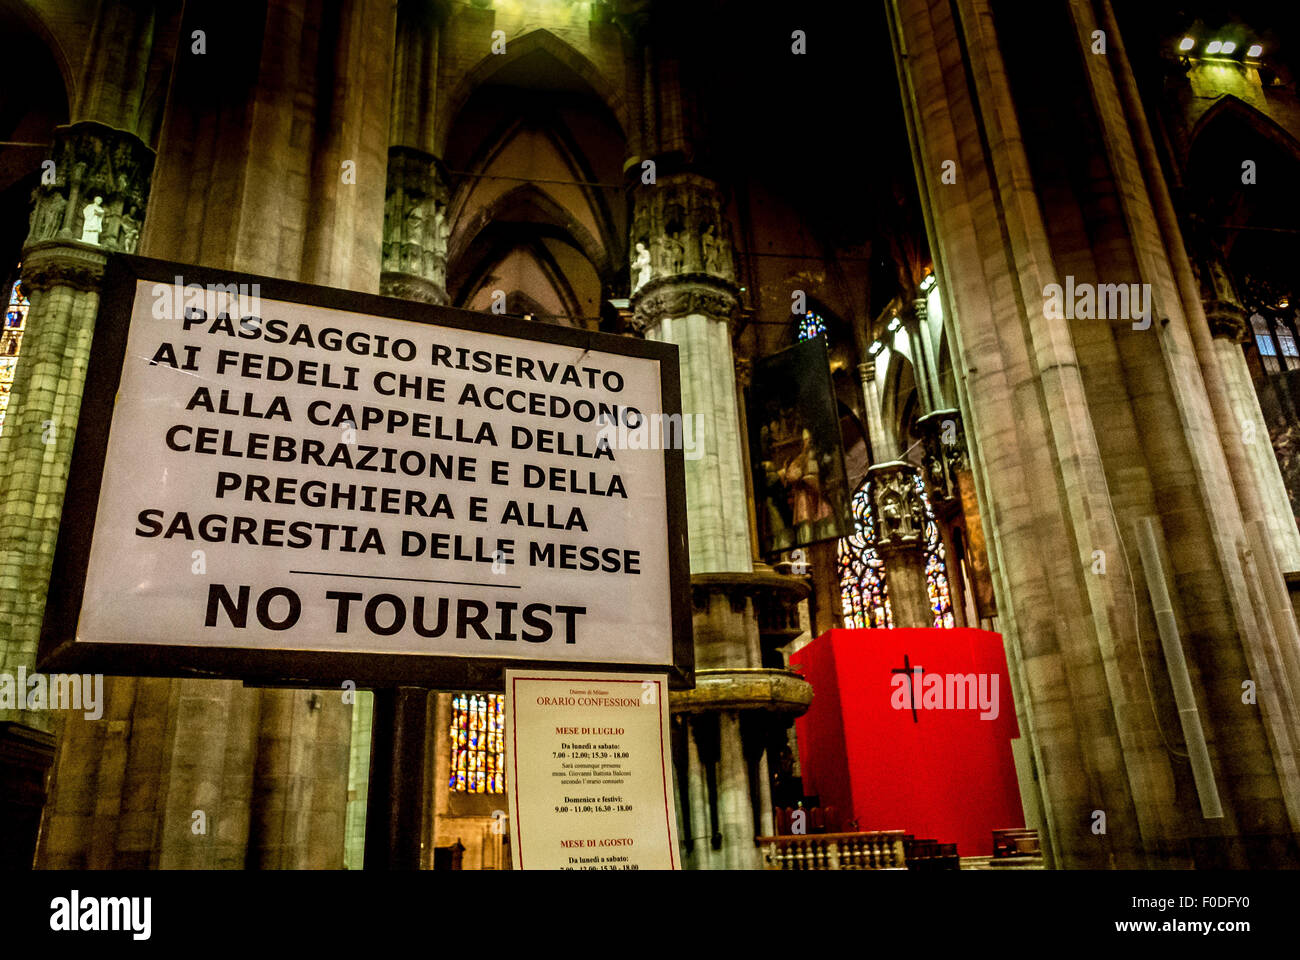 No Tourist sign, Milan Cathedral - Stock Image